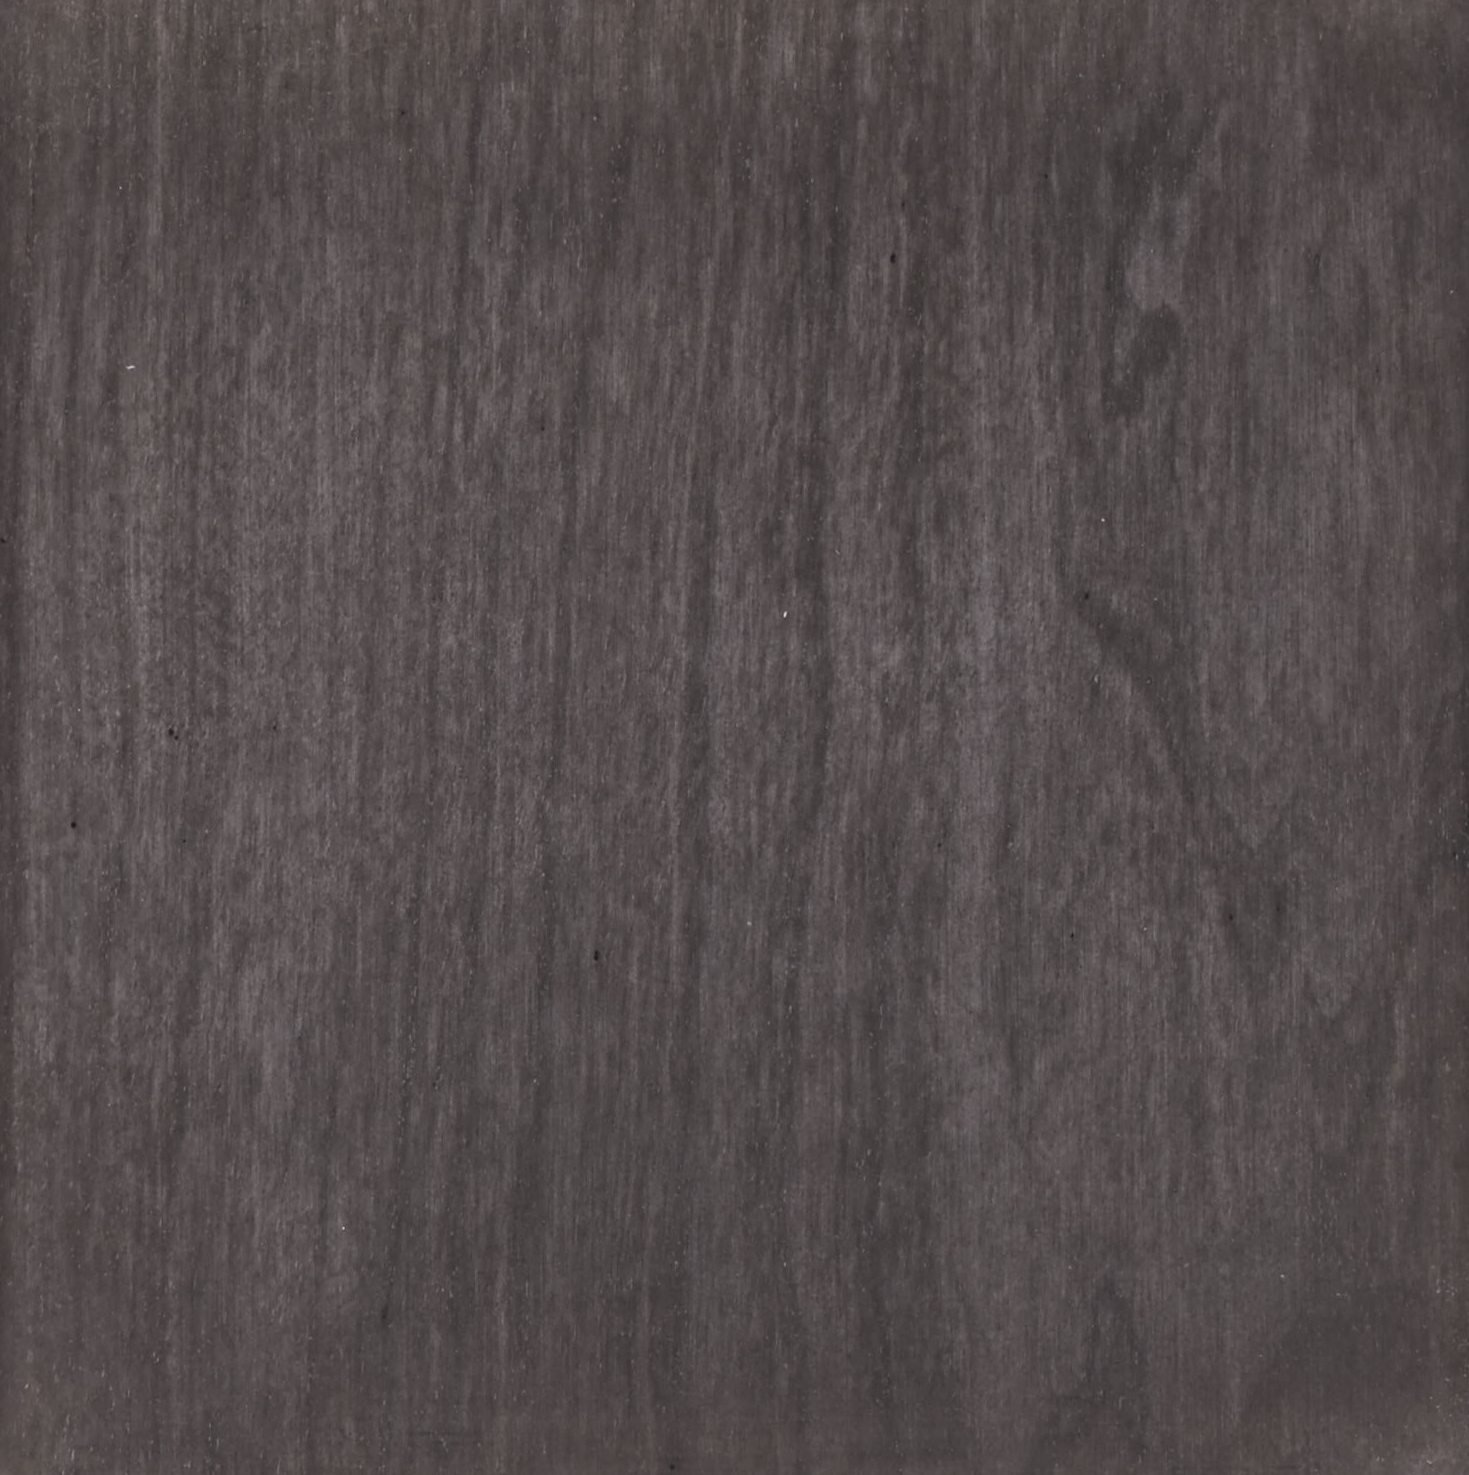 Merrilat Dusk Color Cabinets: You Have Selected Dusk In Cherry